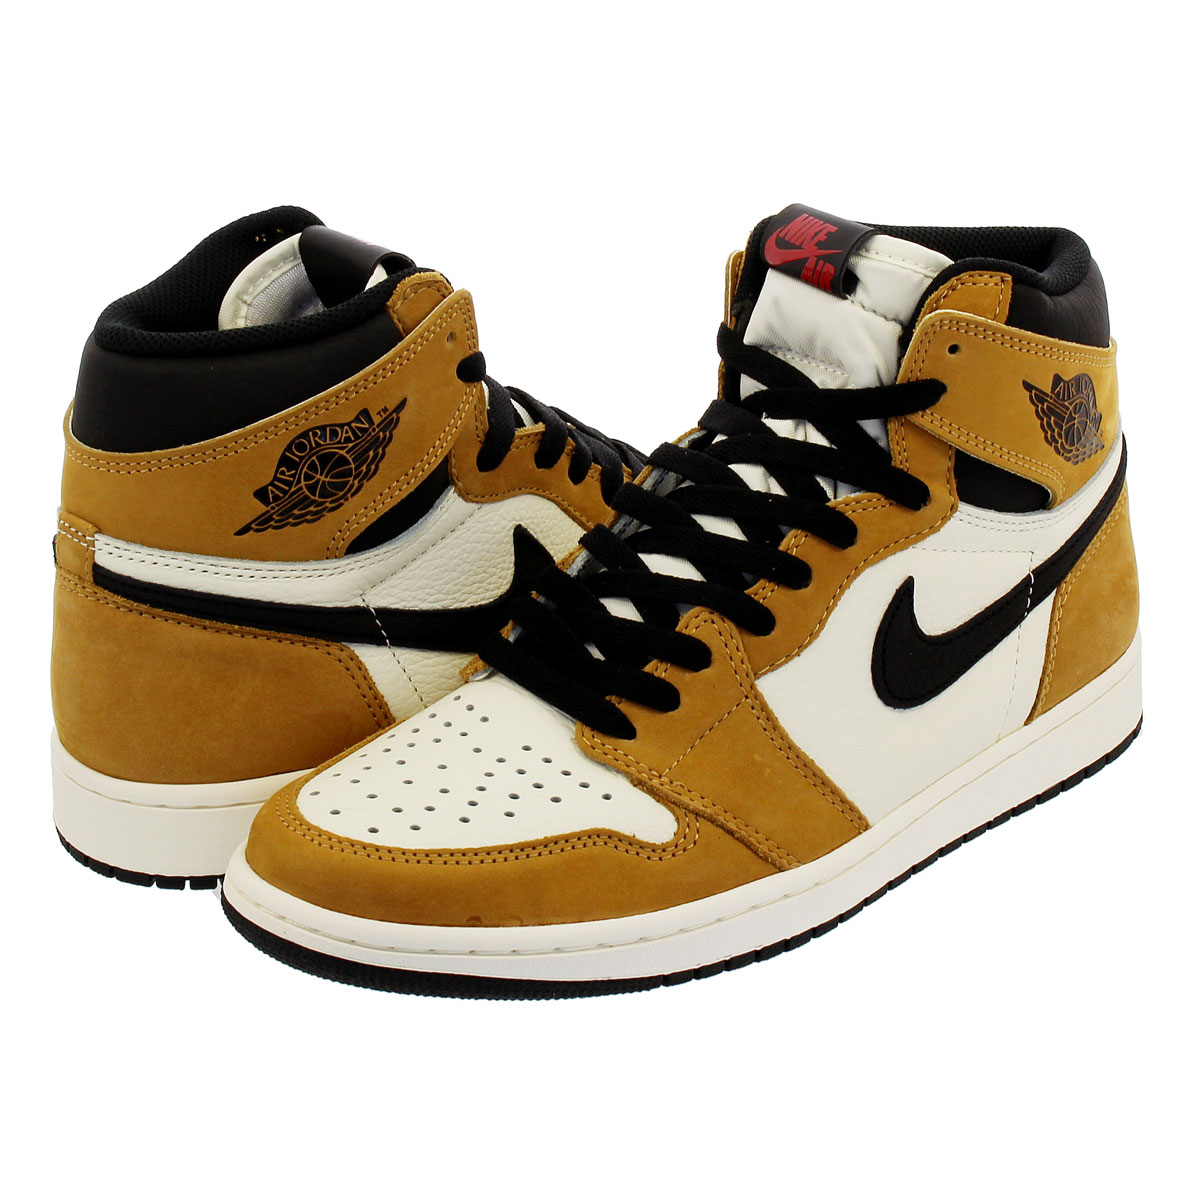 d6784fca36d8 NIKE AIR JORDAN 1 RETRO HIGH OG Nike Air Jordan 1 nostalgic high OG GOLD  HARVEST BLACK 555